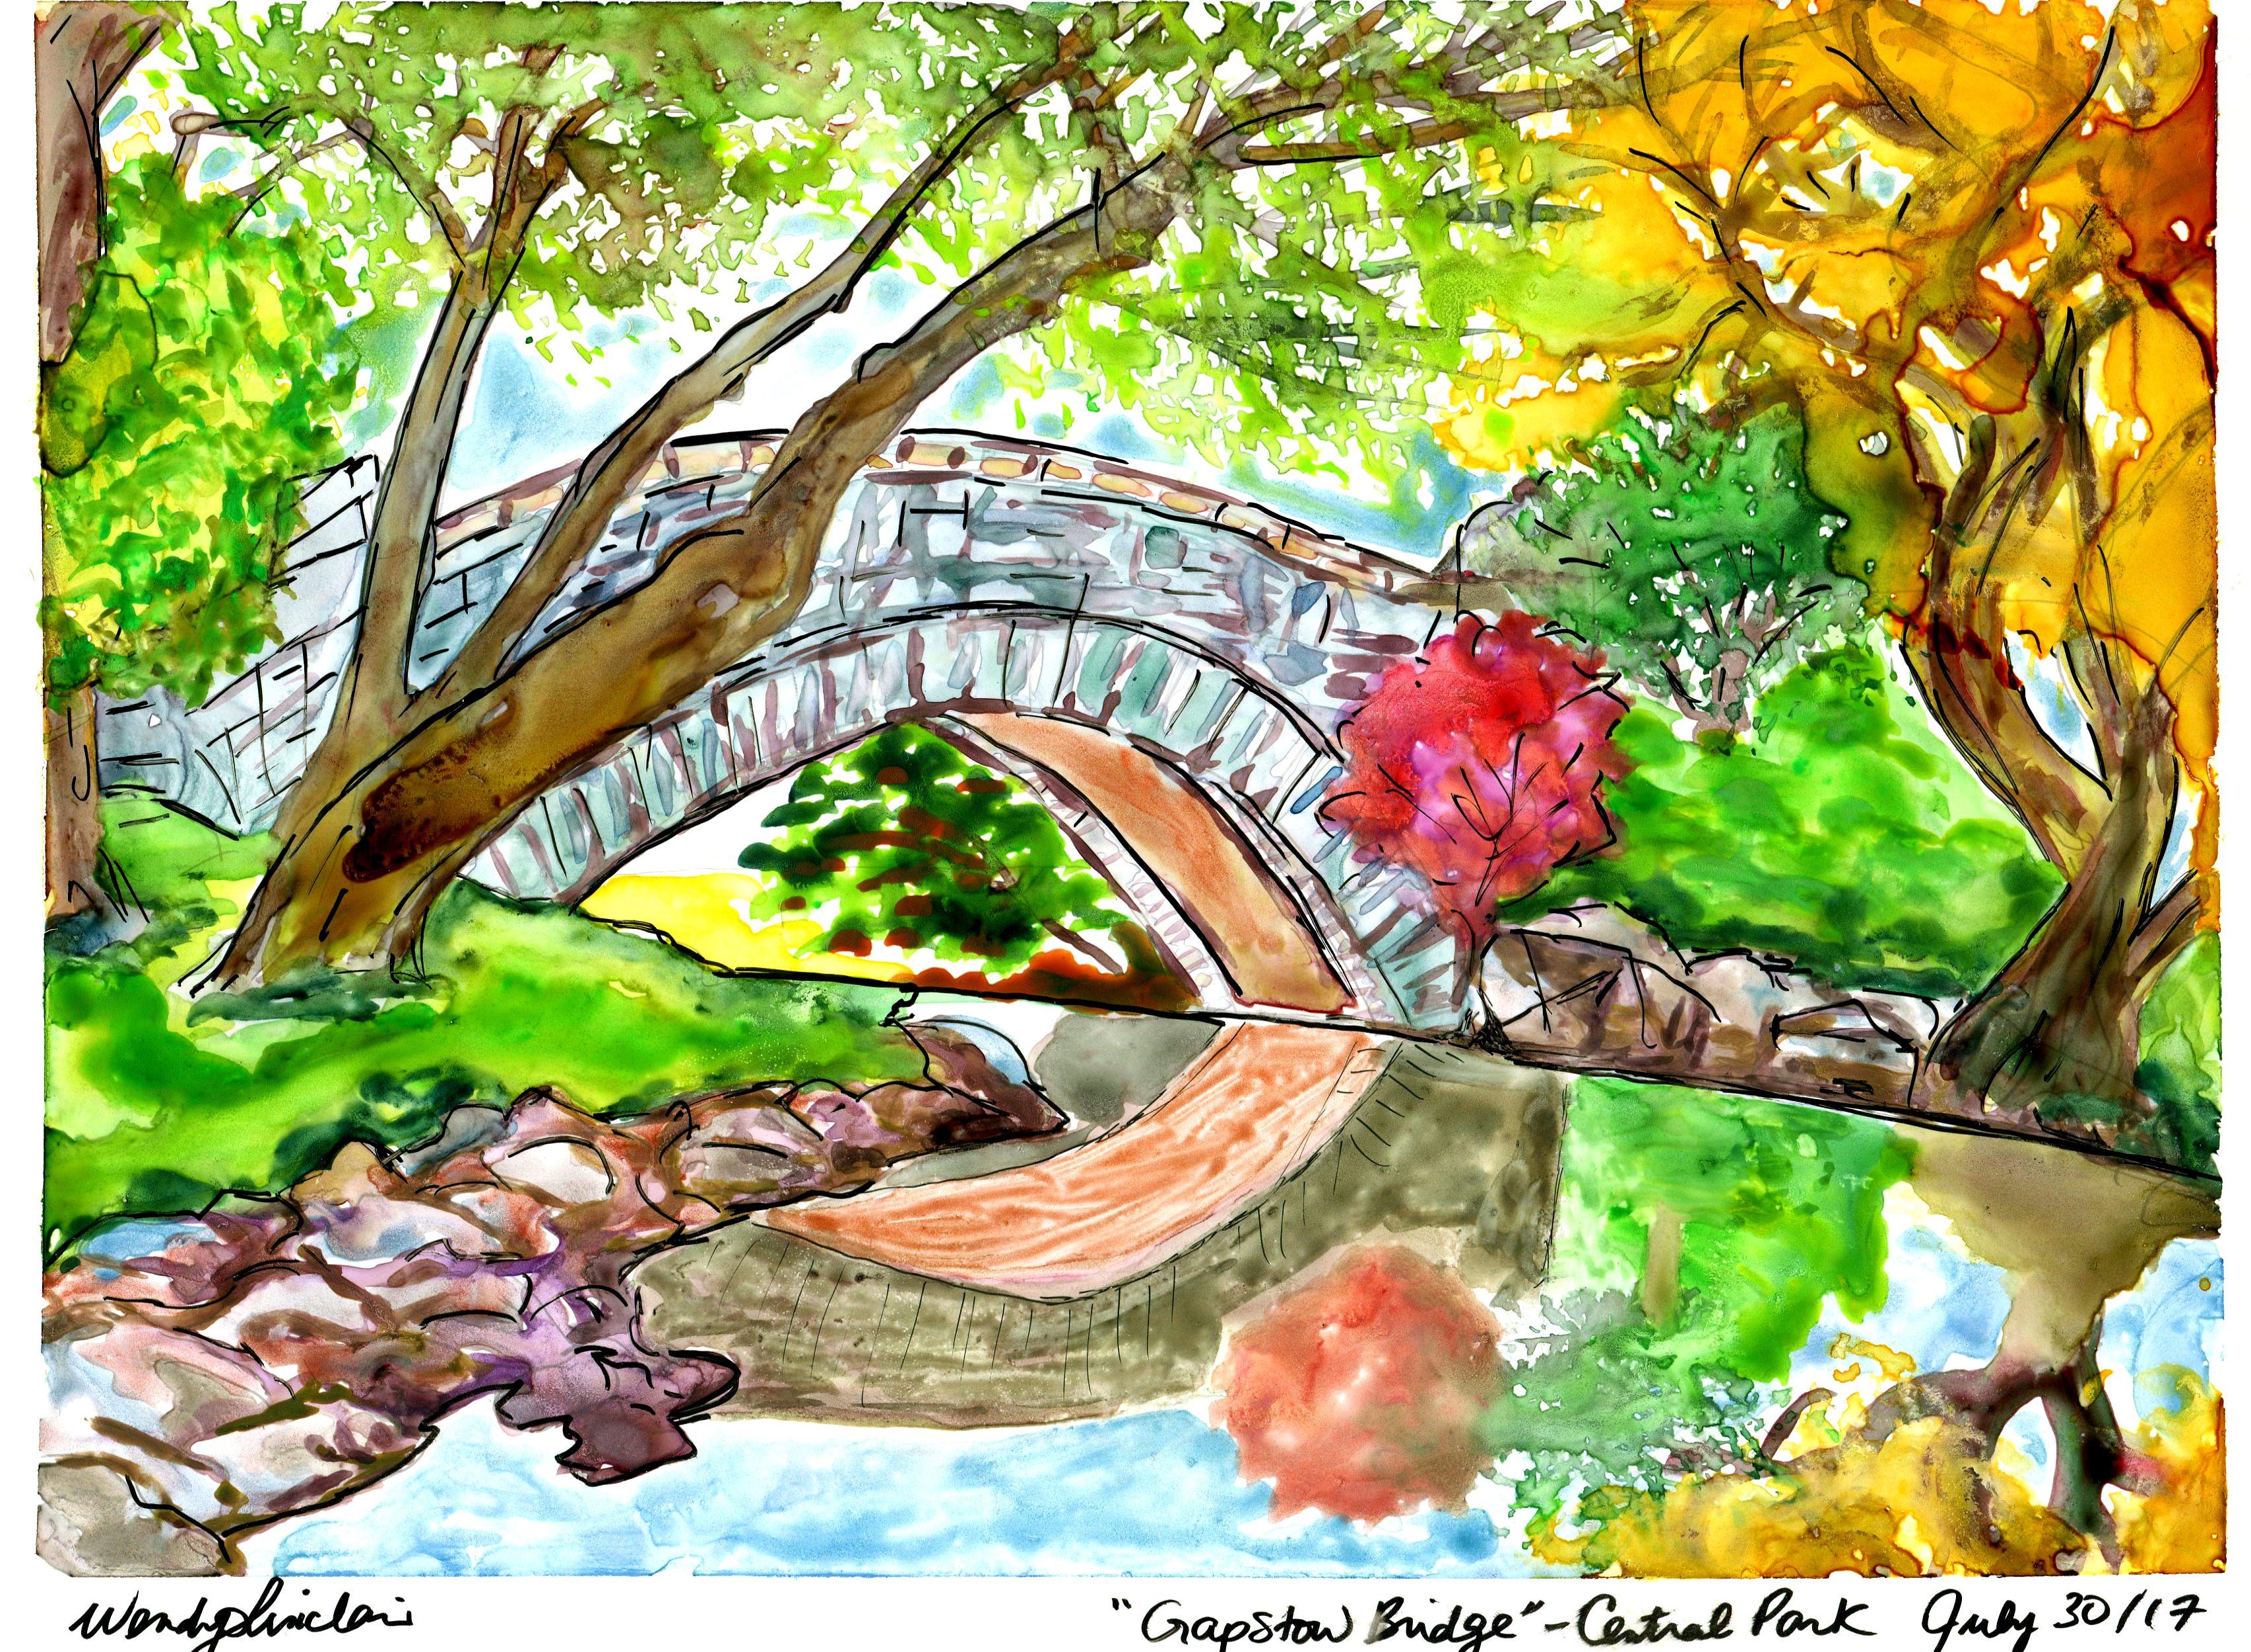 Original watercolour painting by Wendy Sinclair, Toronto artist while on vacation with her kids in New York City's Central Park.